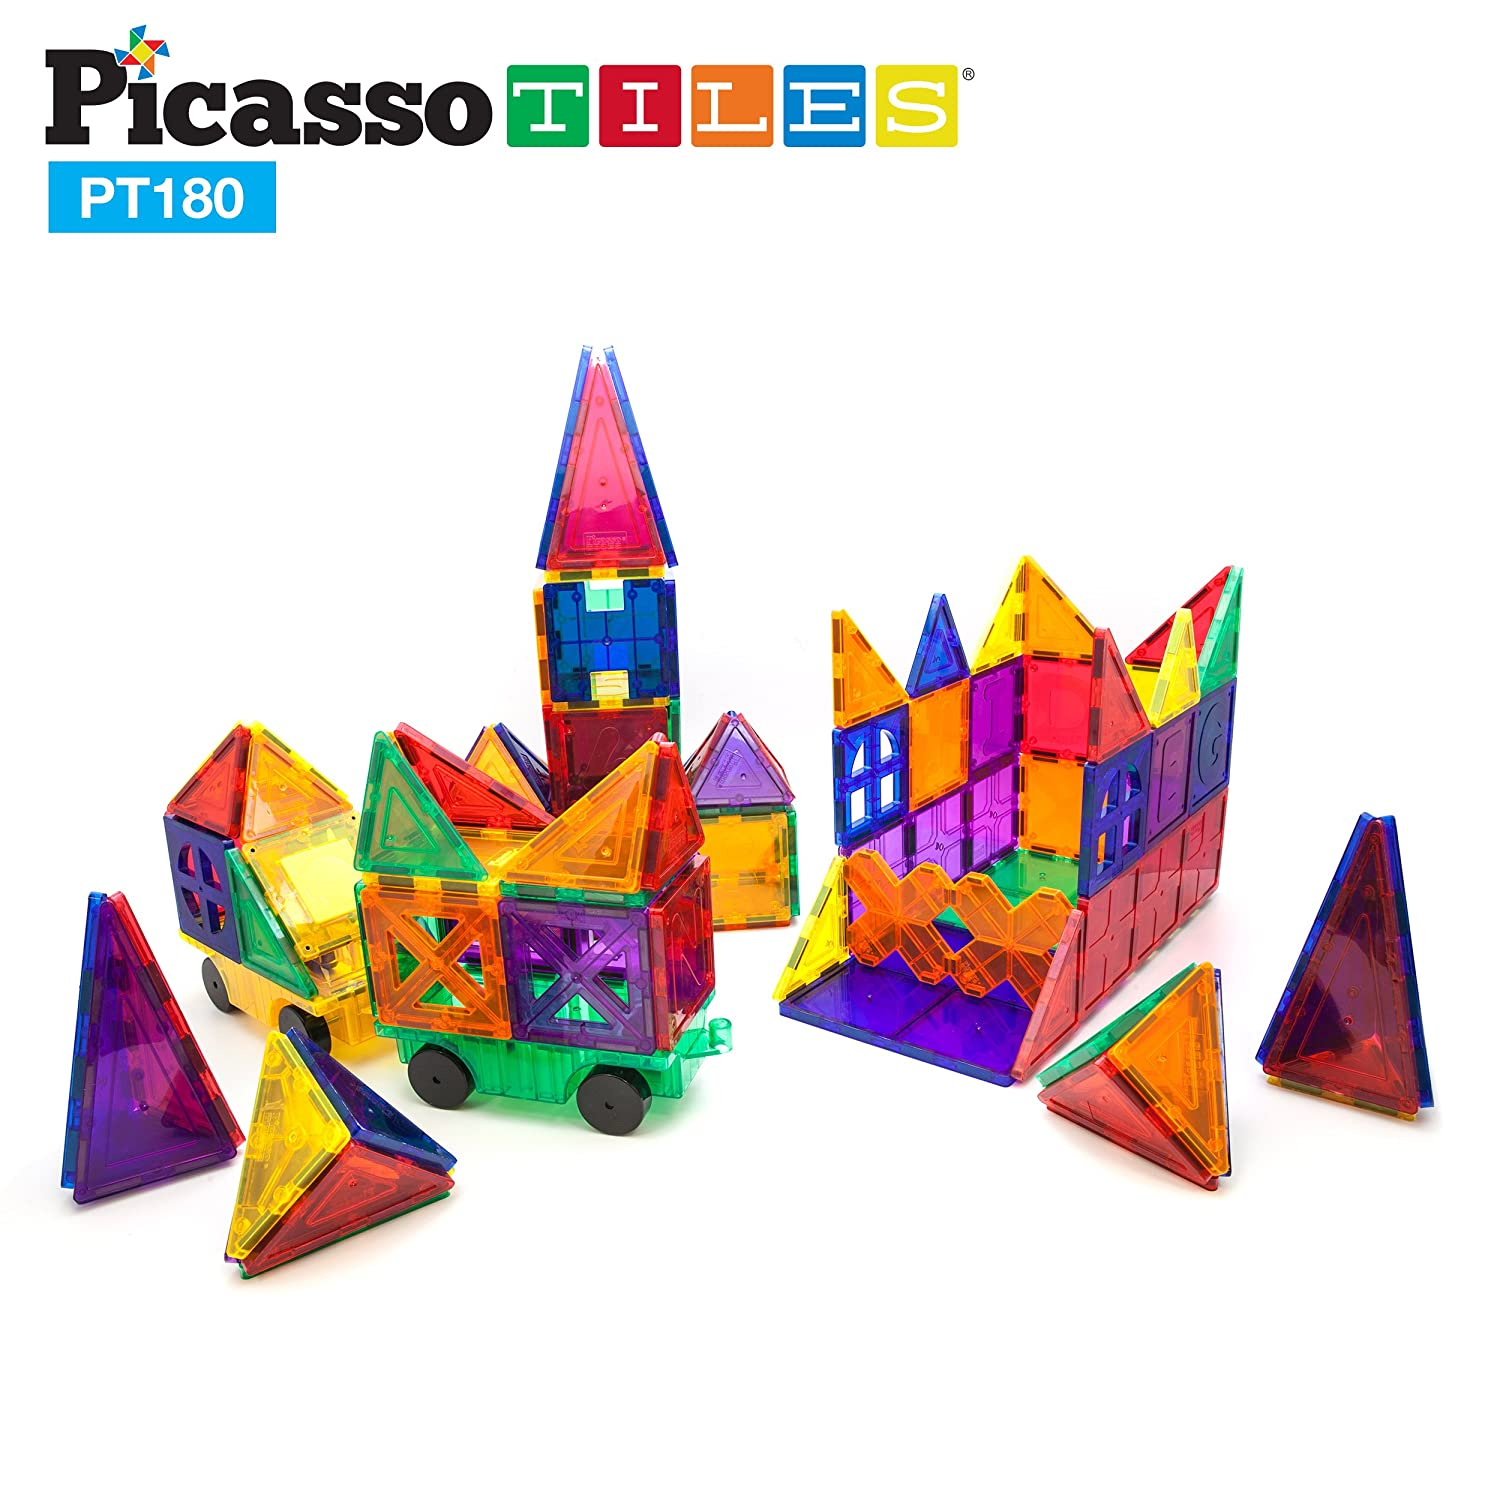 PicassoTiles 180 Piece Set 180pc Building Block Toy Deluxe Construction Kit Magnet Building Tiles Clear Color Magnetic 3D Construction Playboards Educational Blocks Creativity Beyond Imagination Review